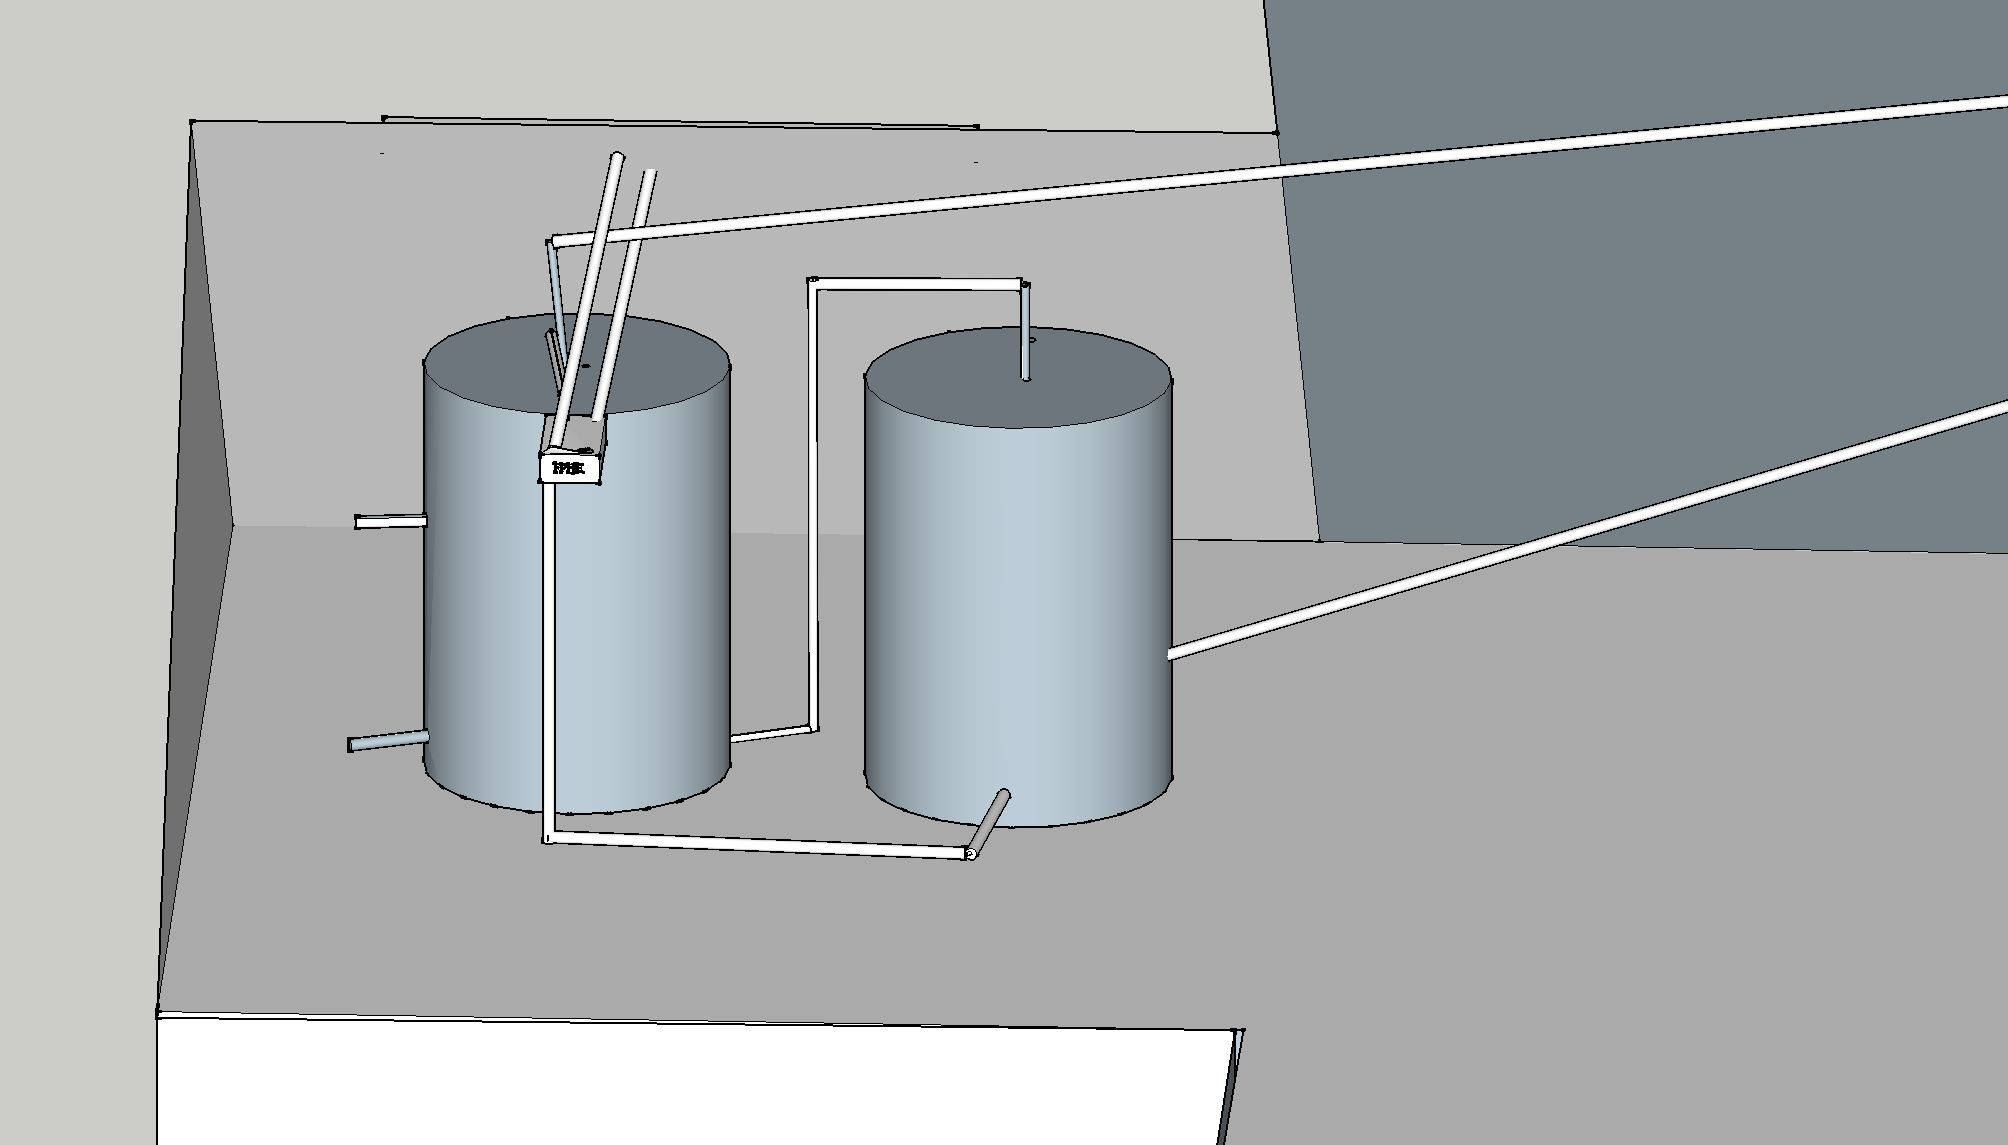 Series connected tanks with external FPHE